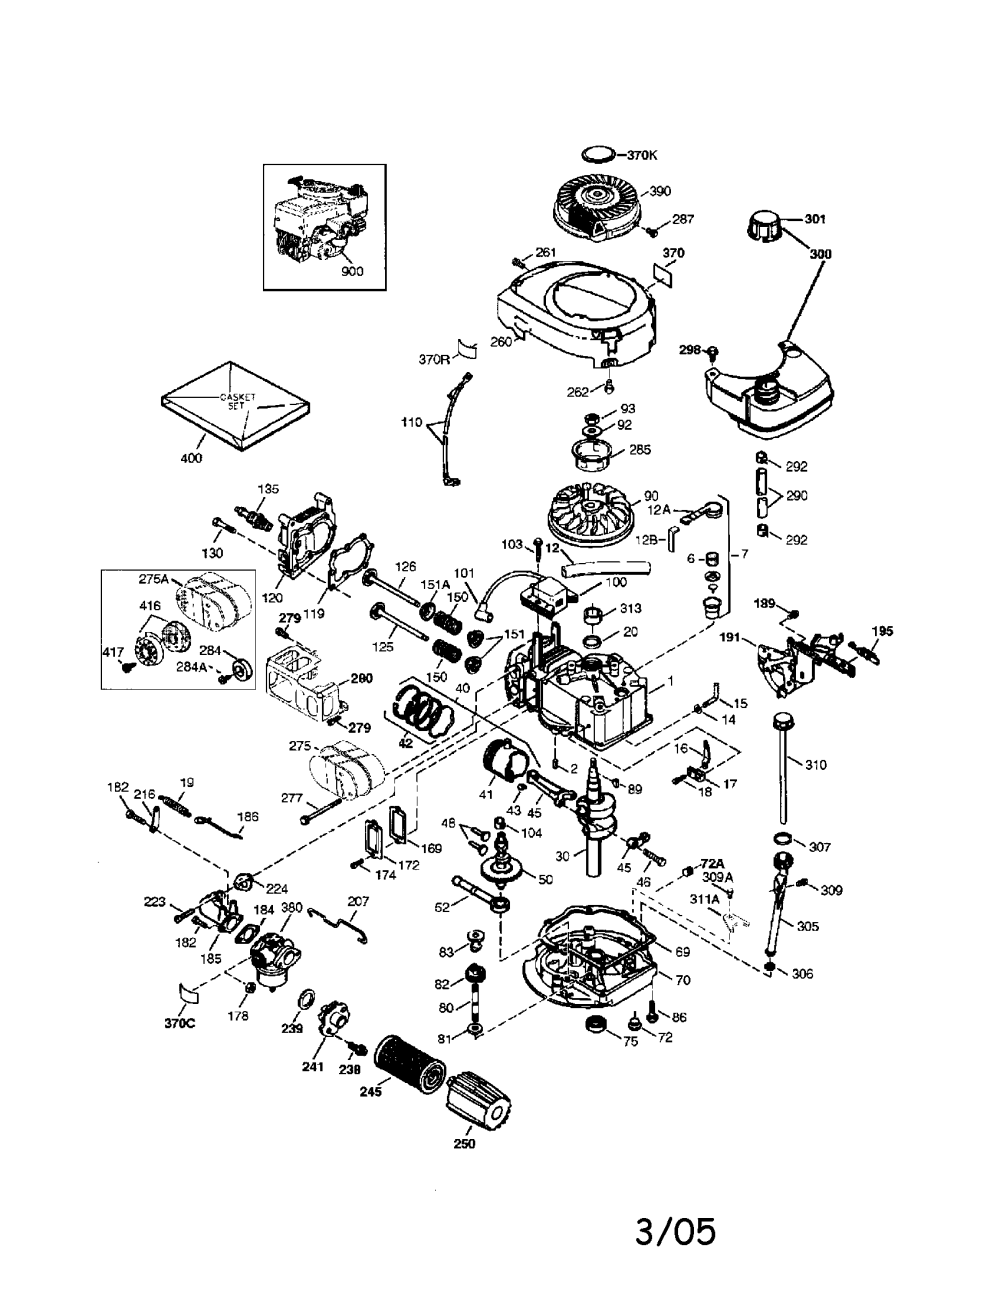 medium resolution of craftsman tecumseh engine parts model 143044500 sears partsdirect rh searspartsdirect com tecumseh engine diagram carburetor tecumseh engine diagrams 0hh60